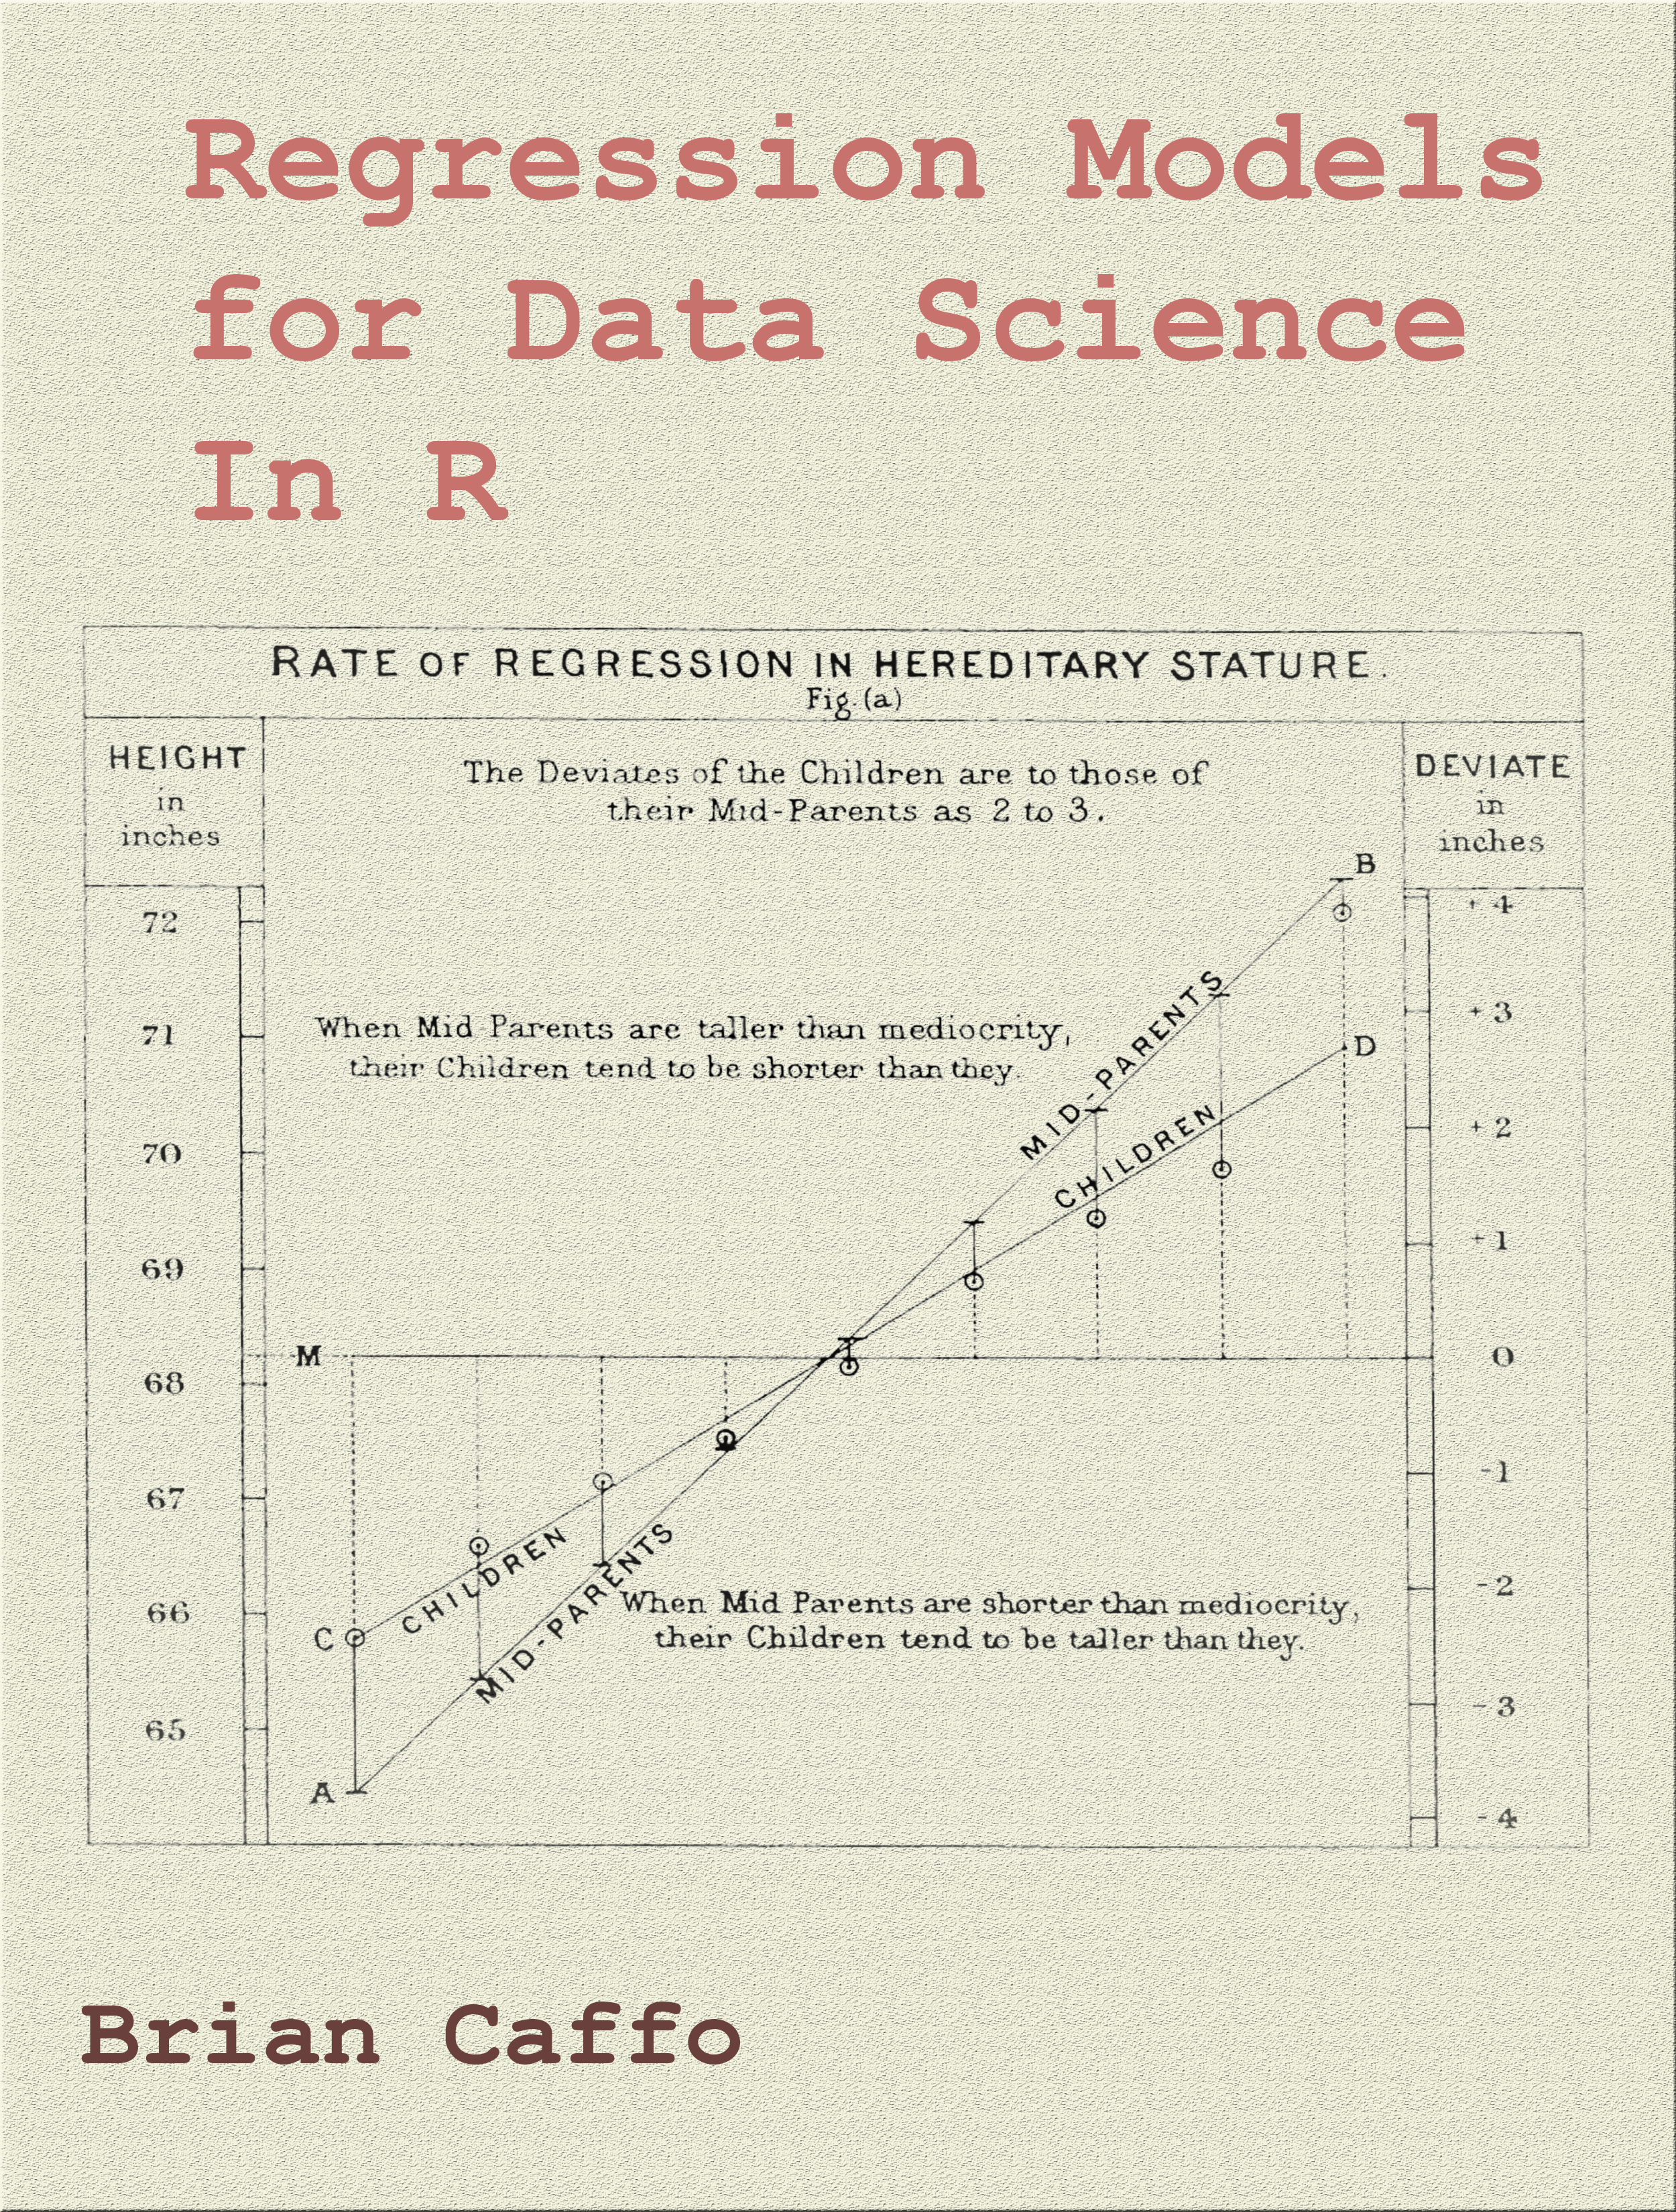 5 Free Data Science eBooks for your Skill Development - Image 4